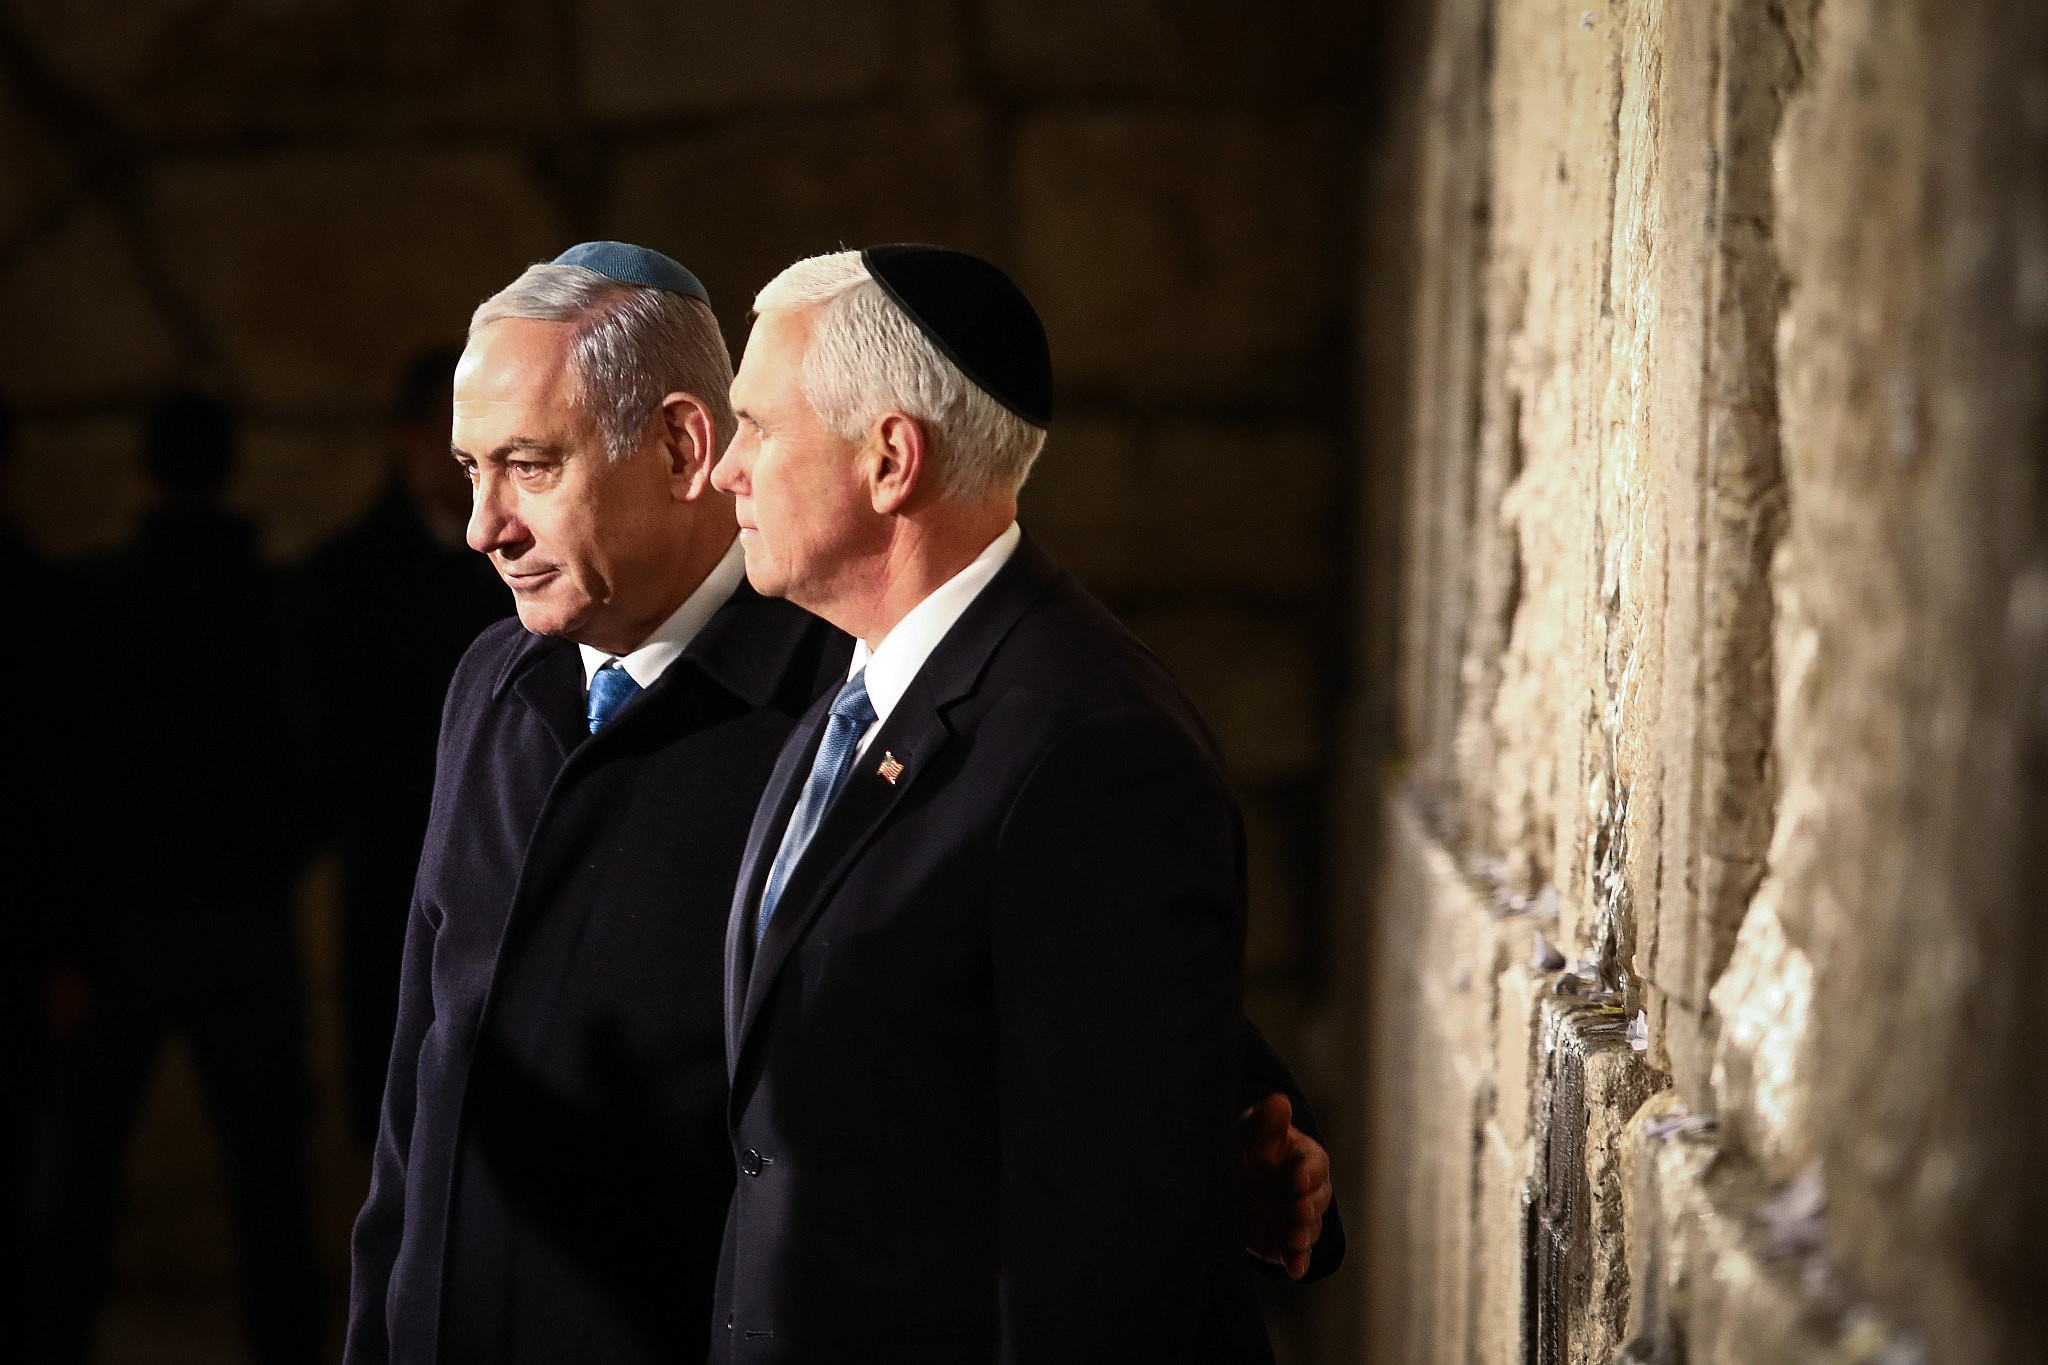 Israeli PM calls for unity government to combat virus